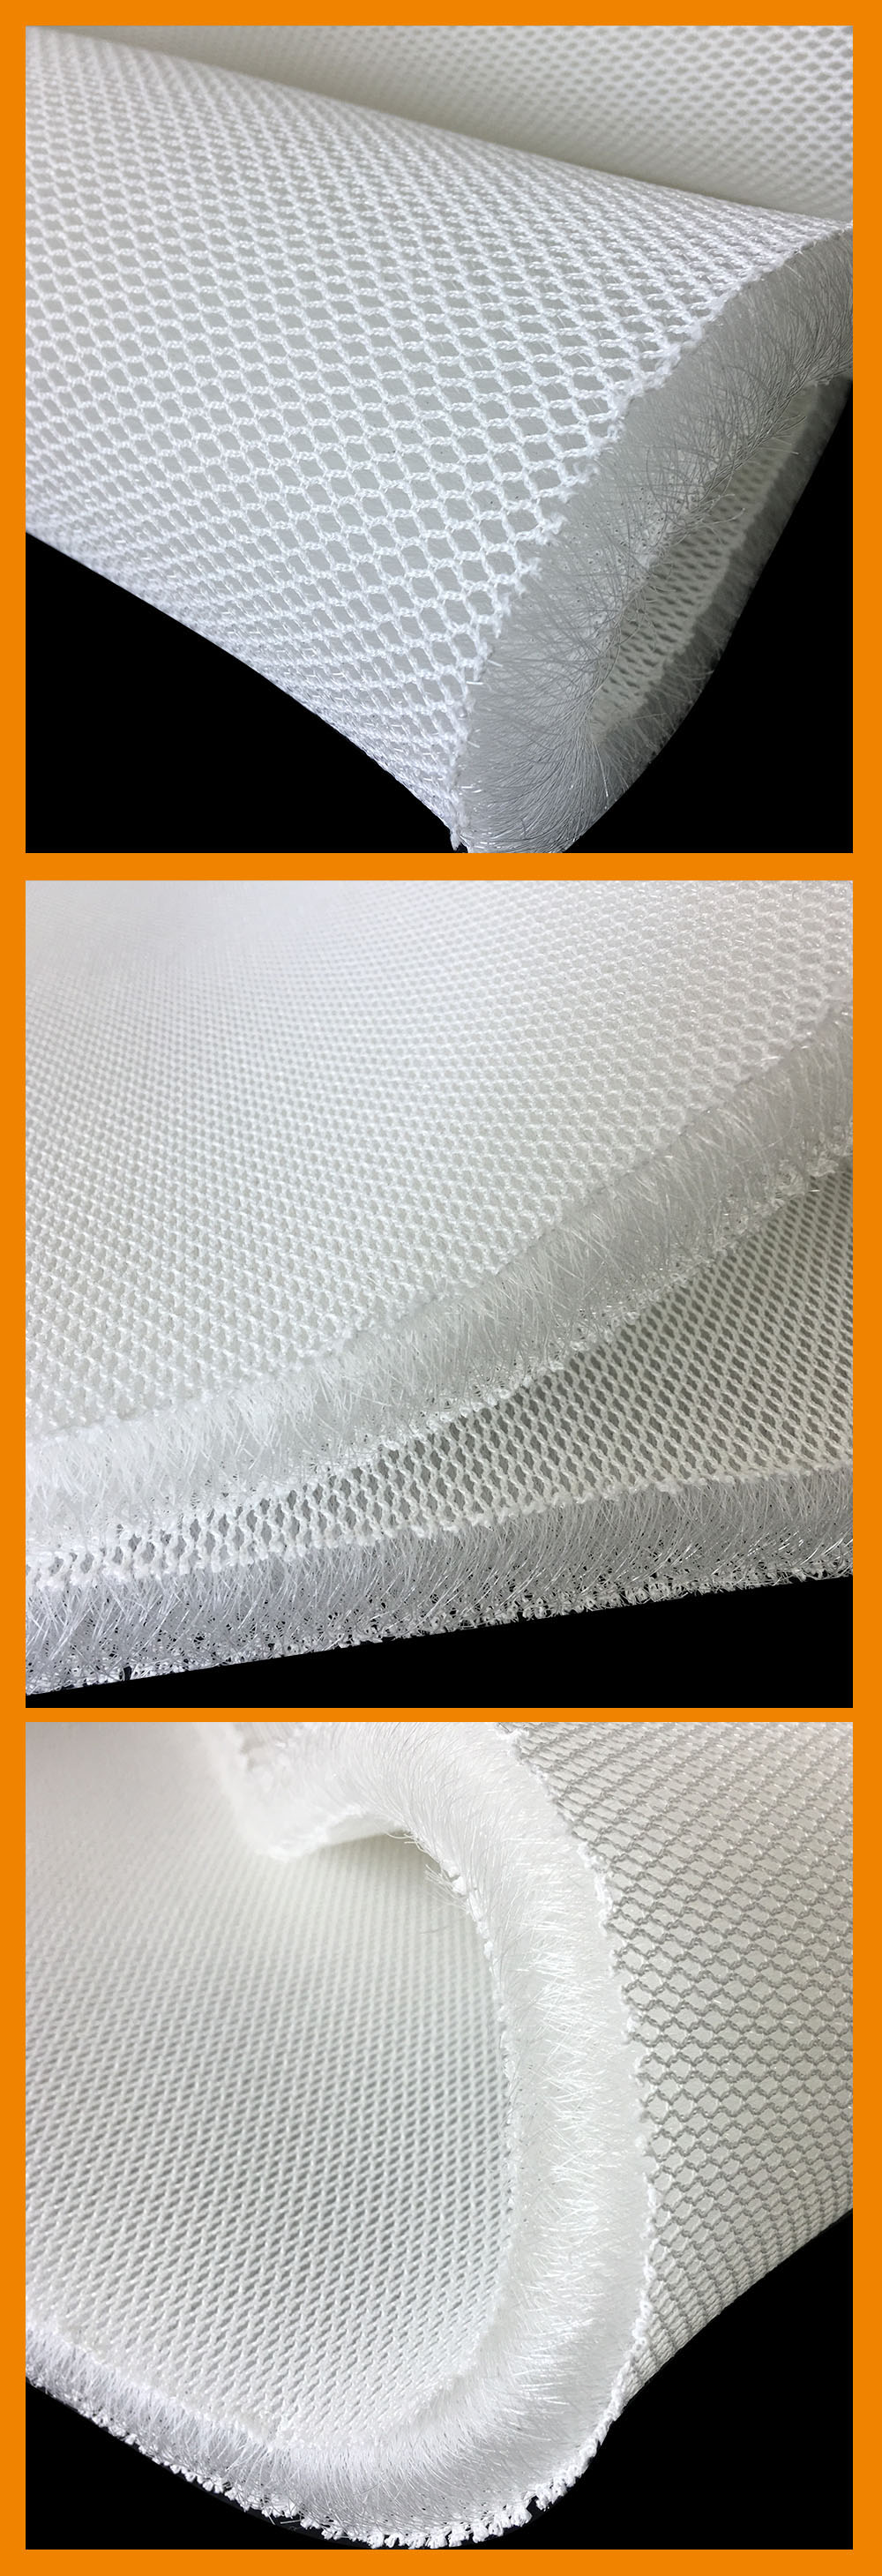 mattress pad nad pillow filling material 3d air mesh fabric 20mm